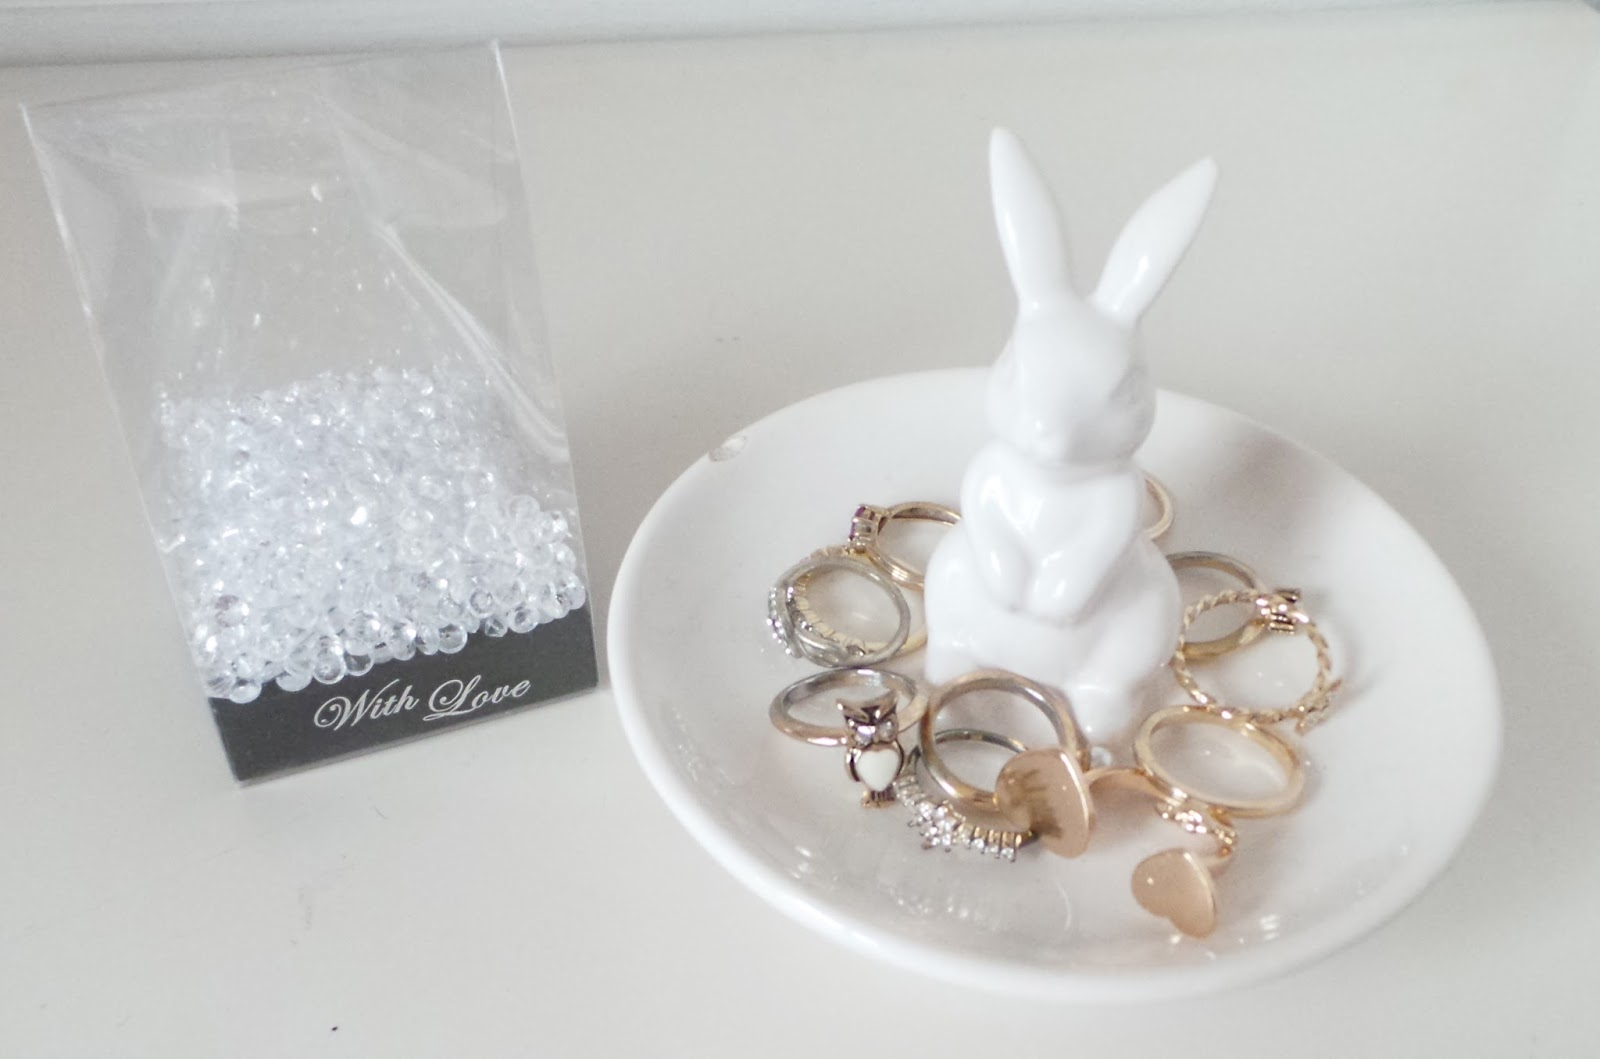 Bunny Ring Holder  Best Present for Your Sweet One